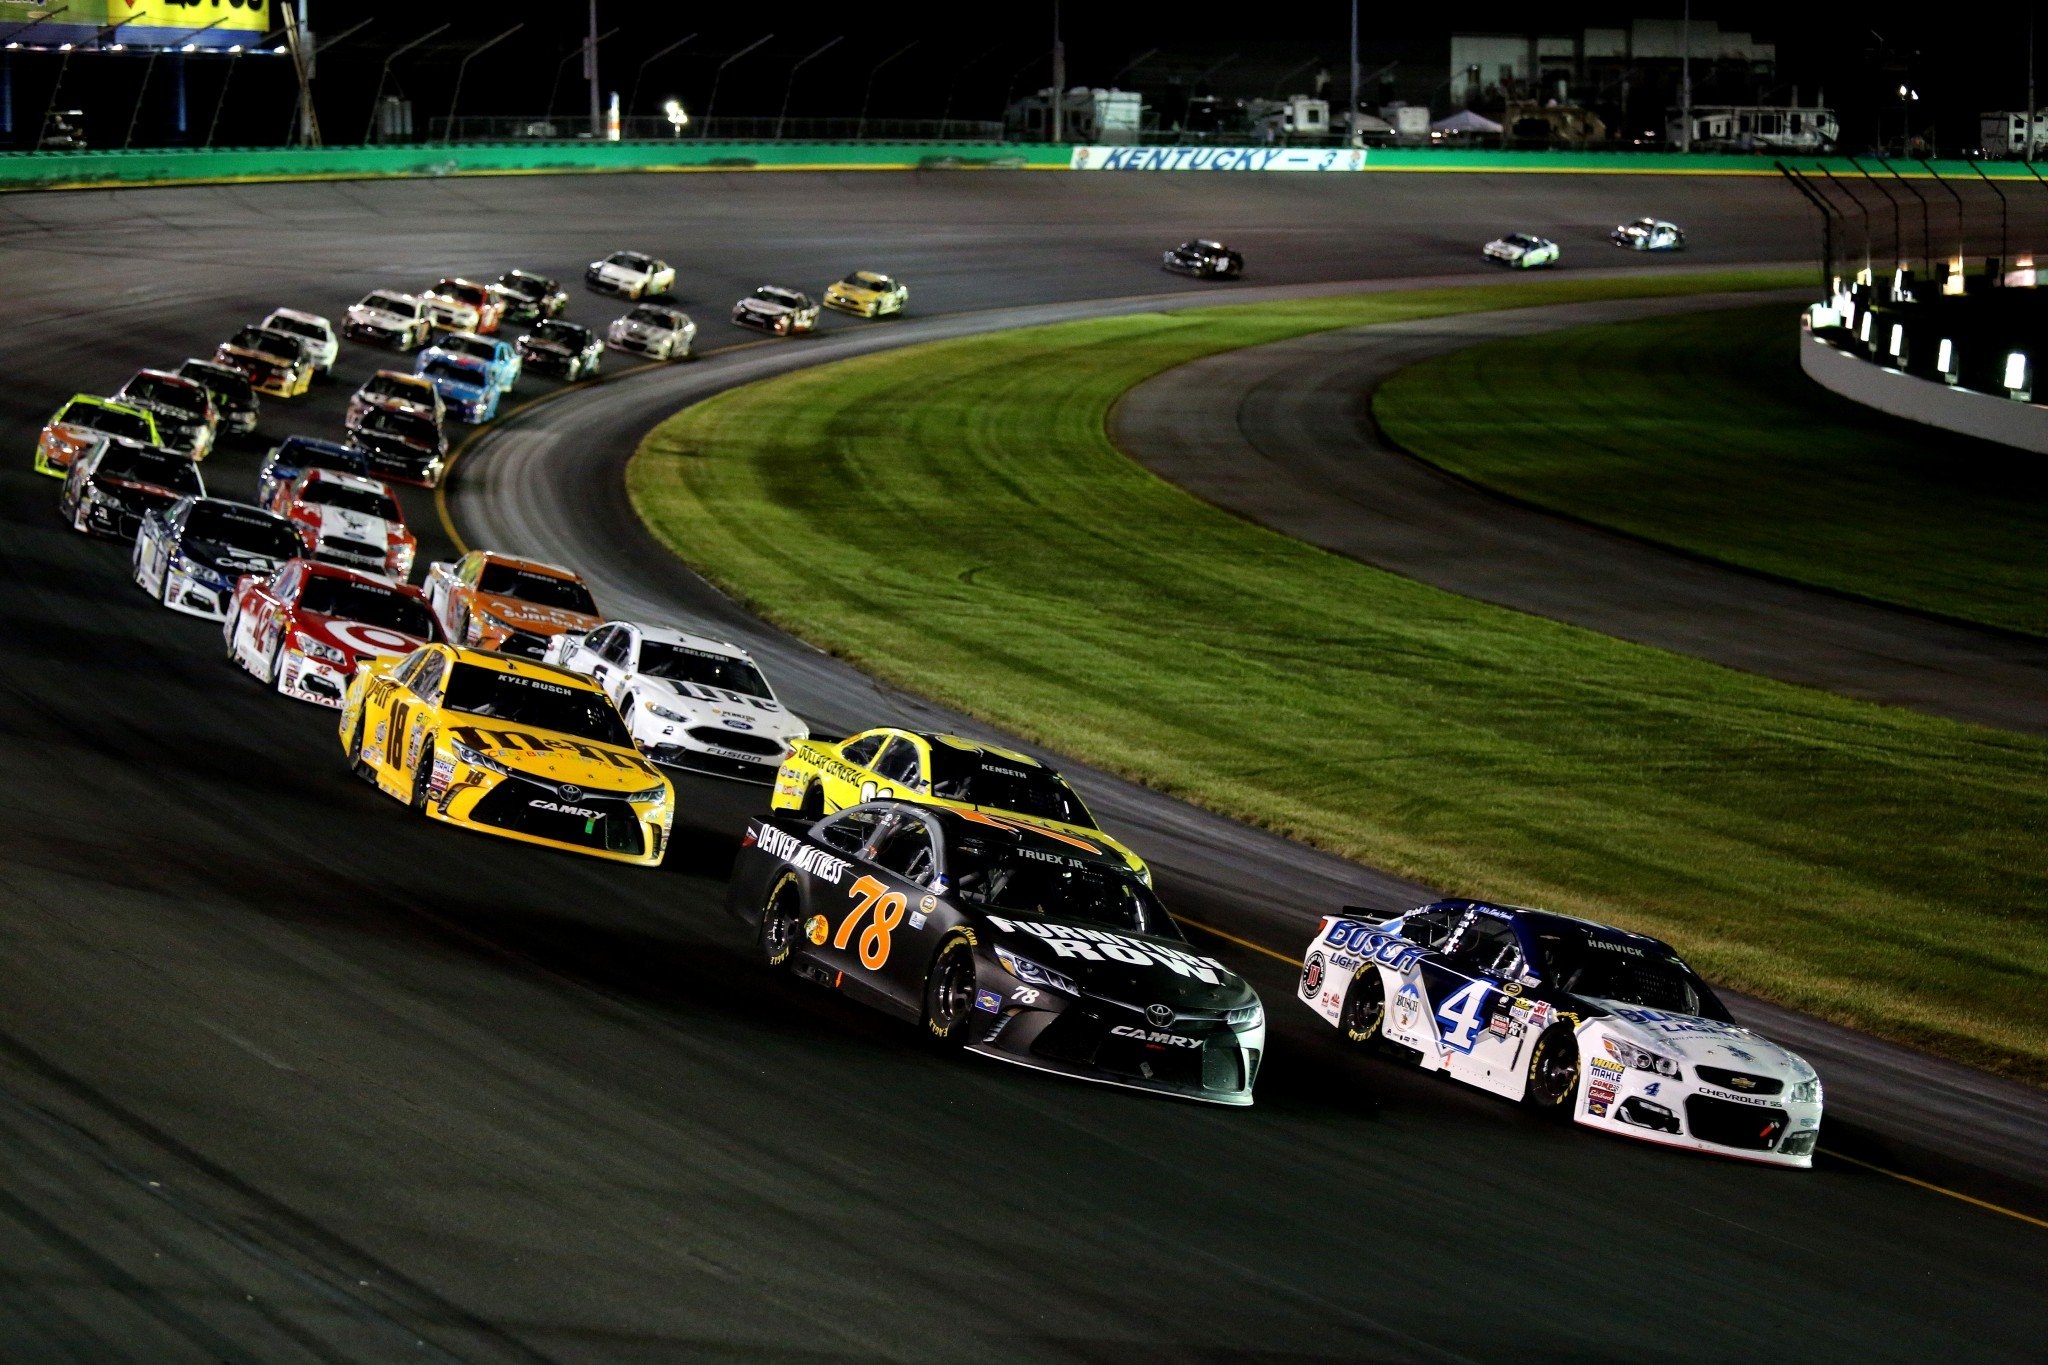 Martin Truex Jr. won at Charlotte earlier this season while Kevin Harvick was second (Getty).